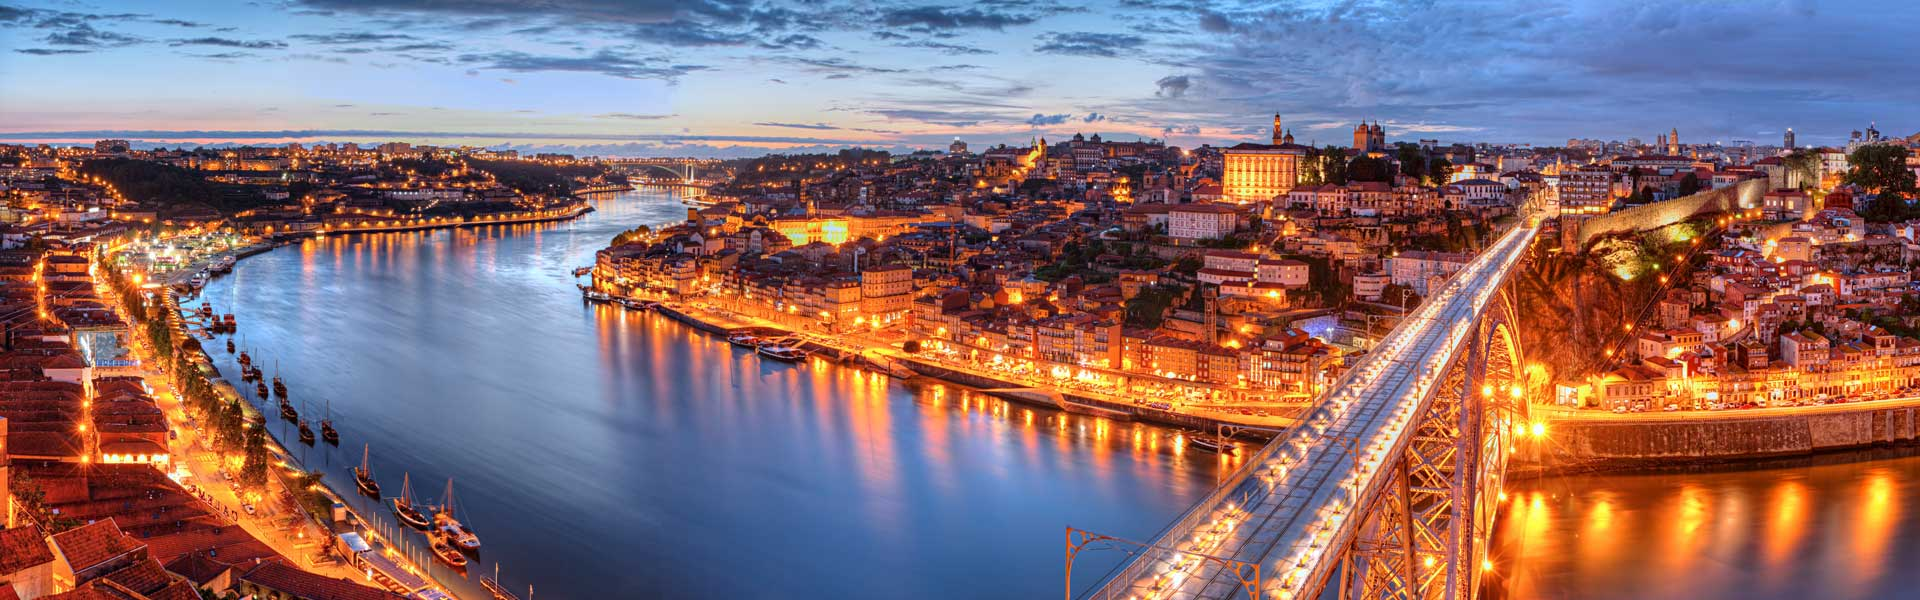 portugal-tour_porto-night